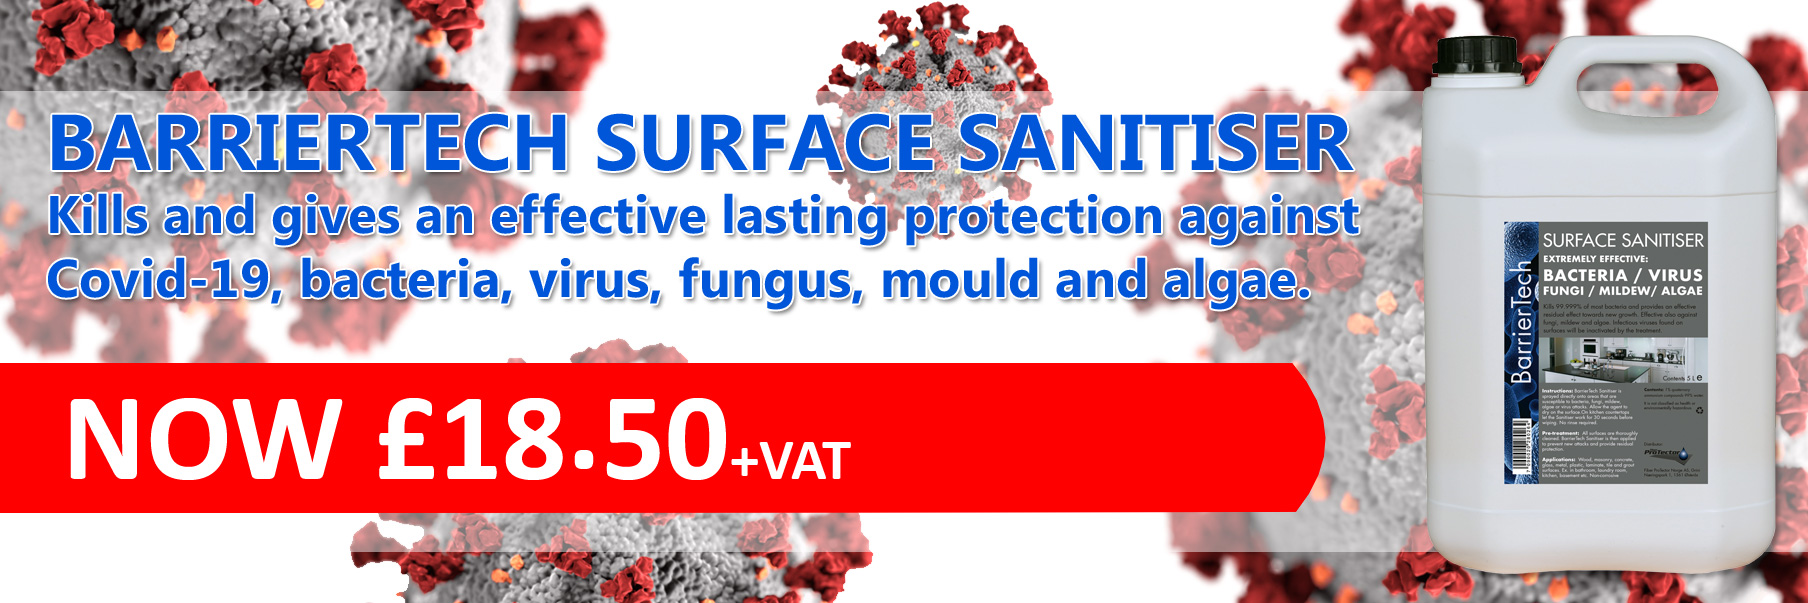 BarrierTech surface sanitiser